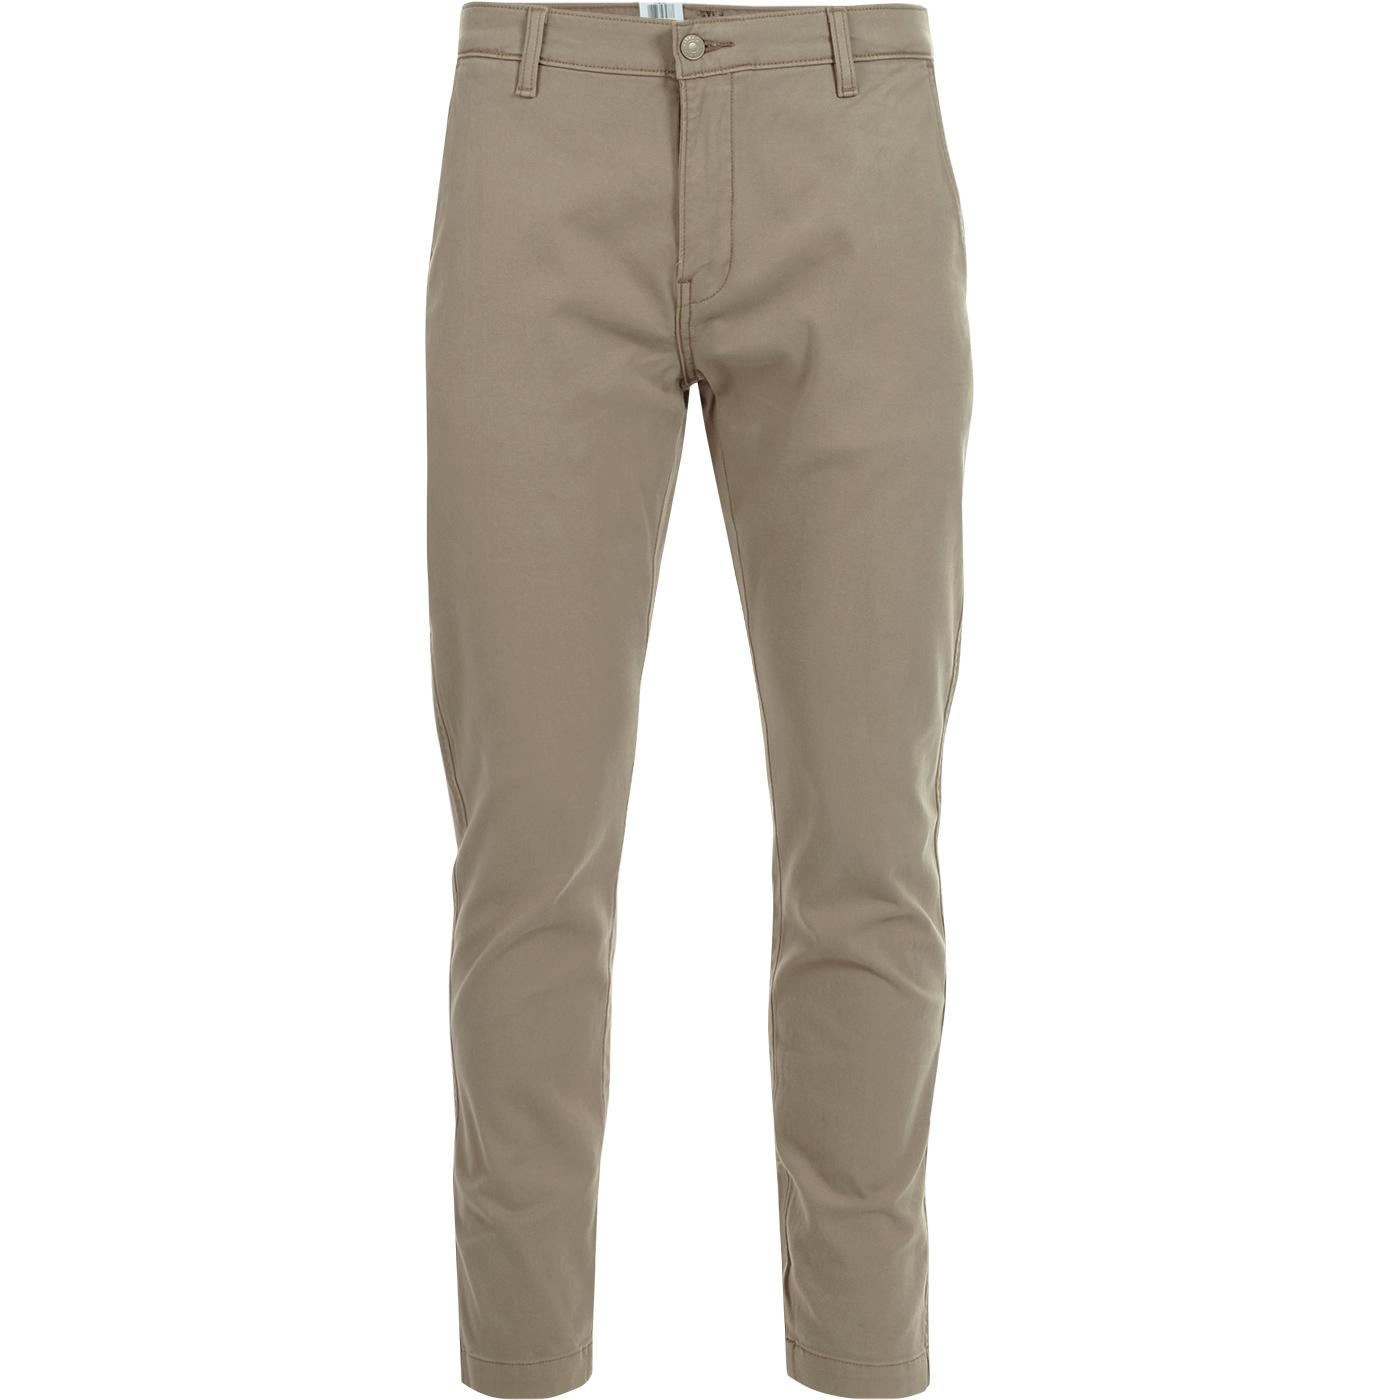 LEVI'S Standard Taper Retro XX Chino Trousers TAN